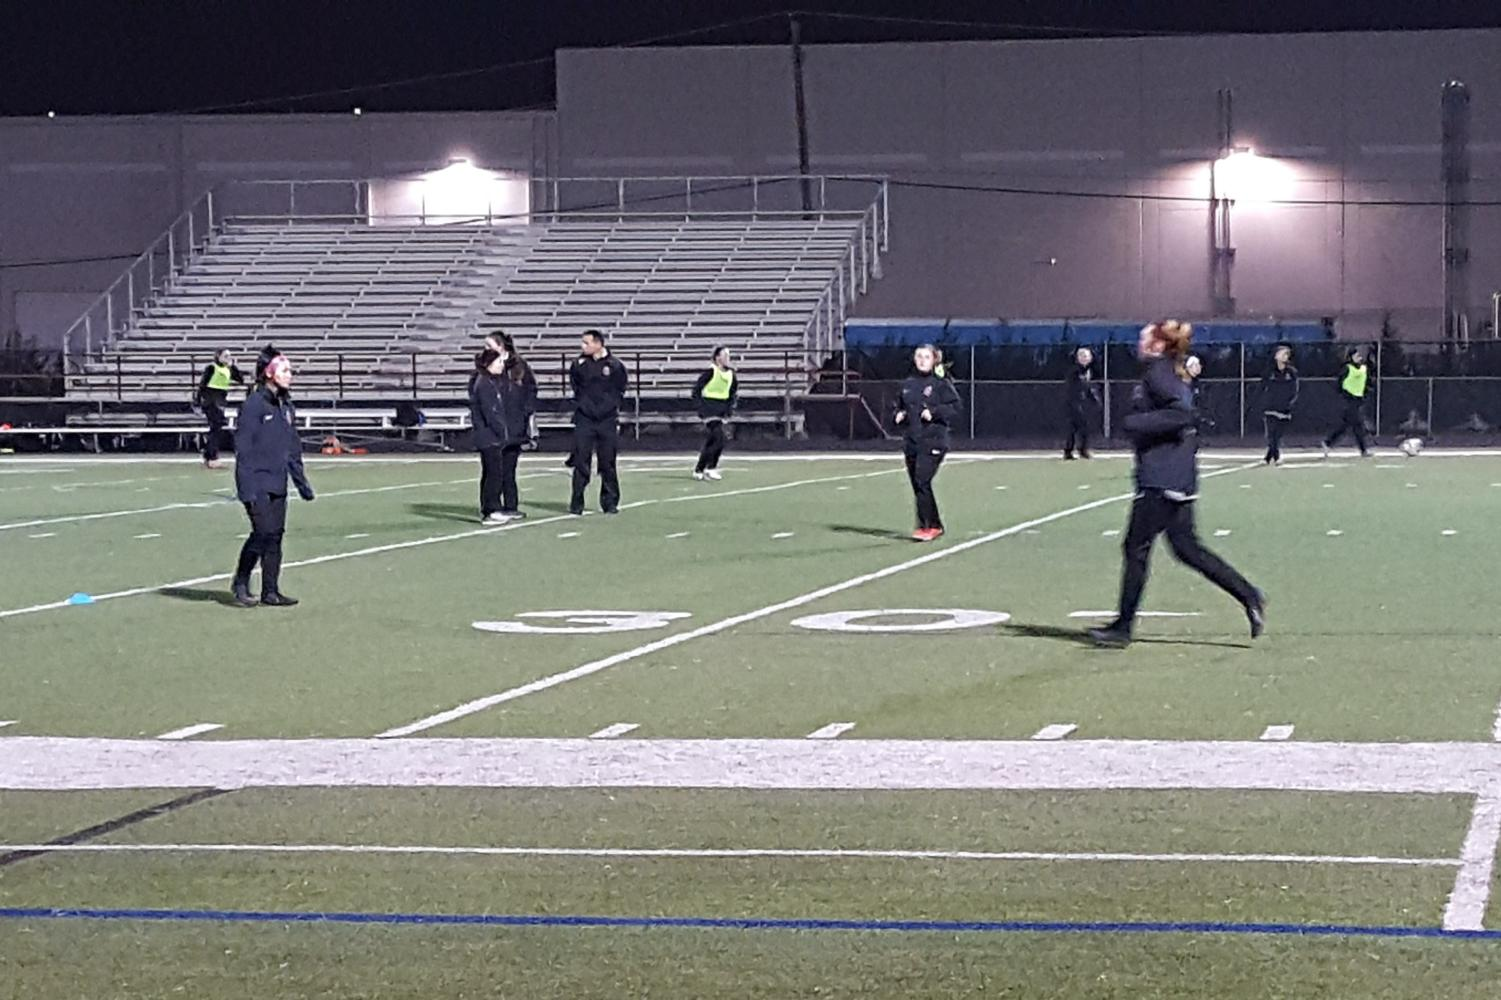 The Coppell girls soccer team warms up for its game against Paschal on Tuesday at CHS9 Lesley Field. Coppell would go on to win the game, 5-0, after goals from freshman forward Michelle Pal (2), sophomore midfielder Maya Ozymy, sophomore forward Jocelyn Alonzo and freshman midfielder Bailey Peek.